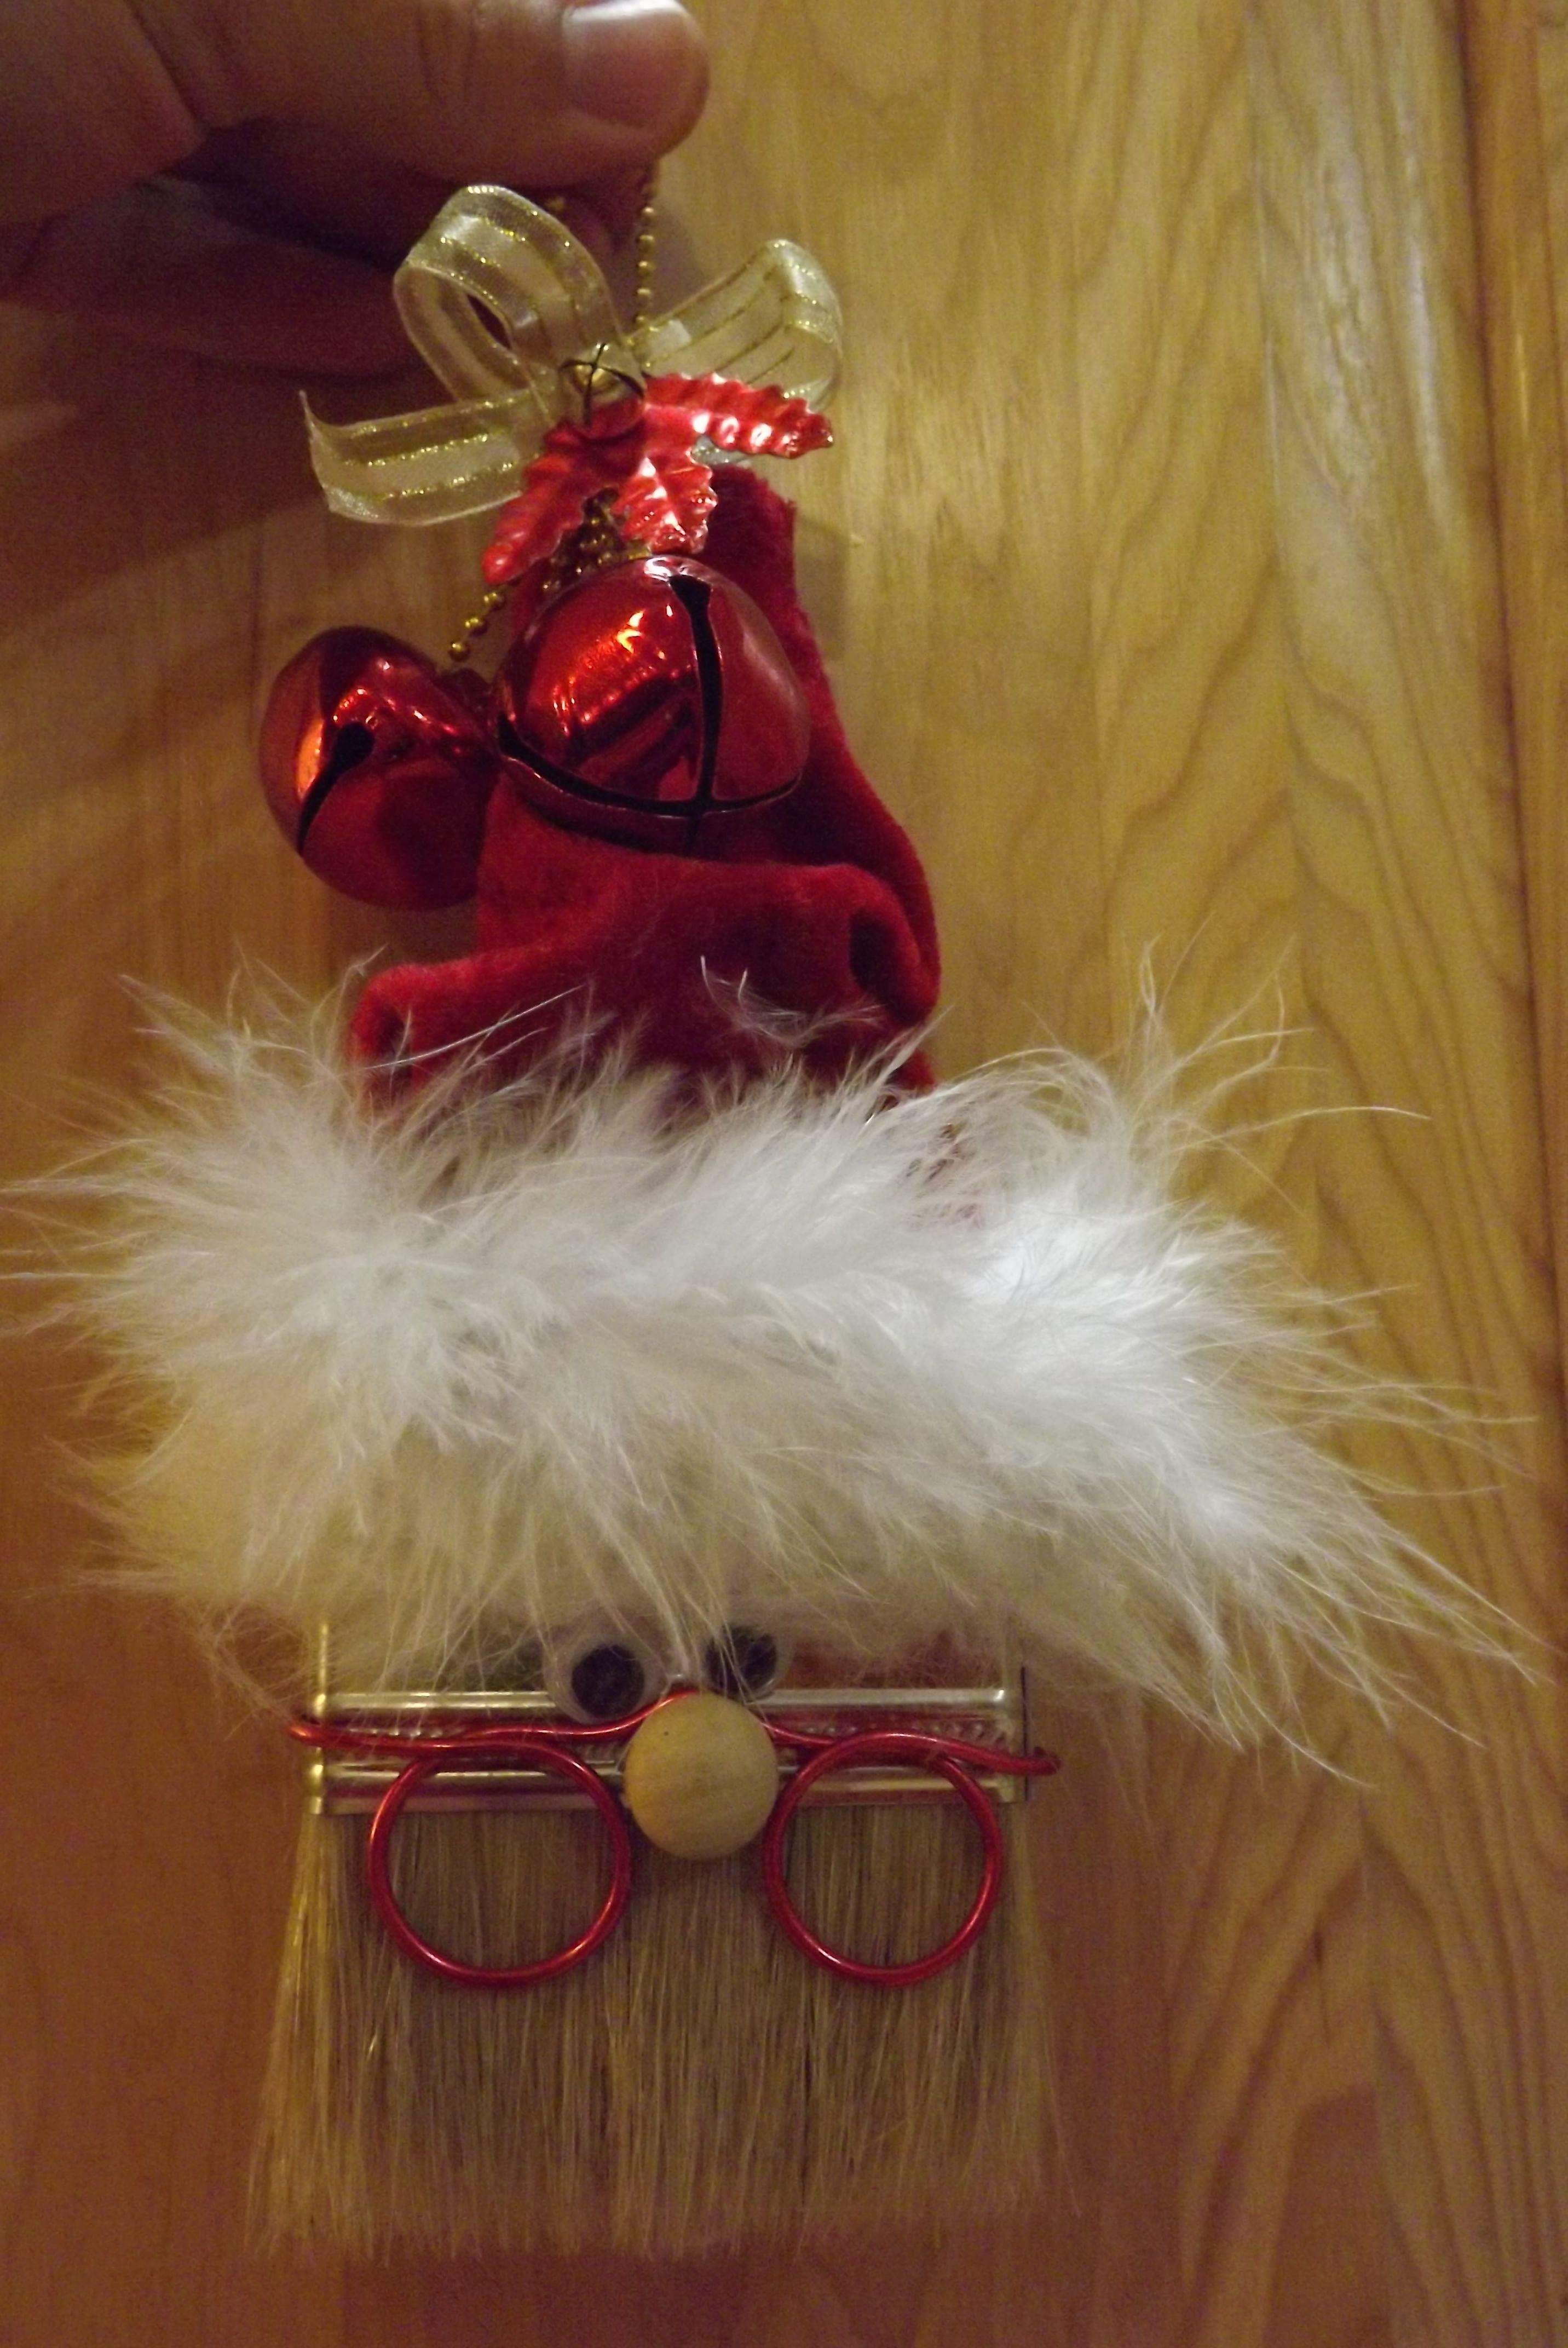 Homemade Christmas Ornament. Santa Claus made from a paint